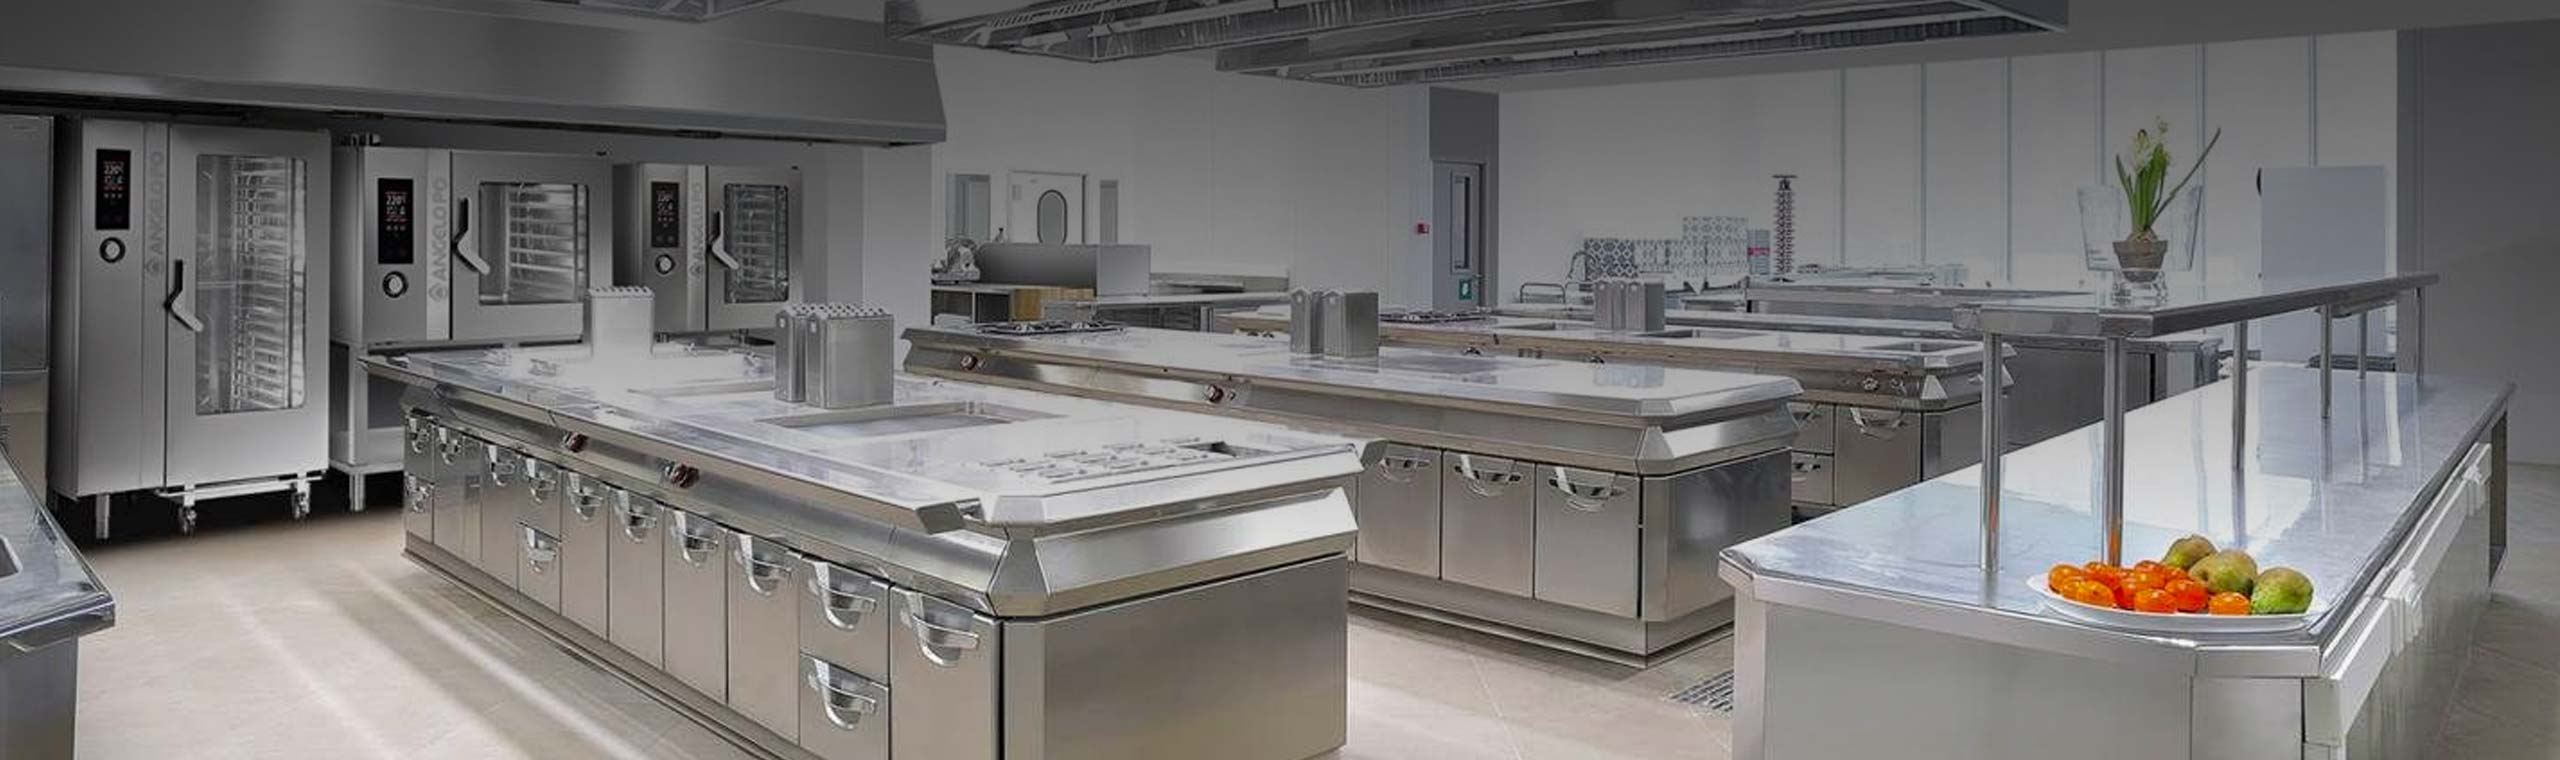 Hospitality Equipment, Commercial Kitchen Equipment and Catering Equipment